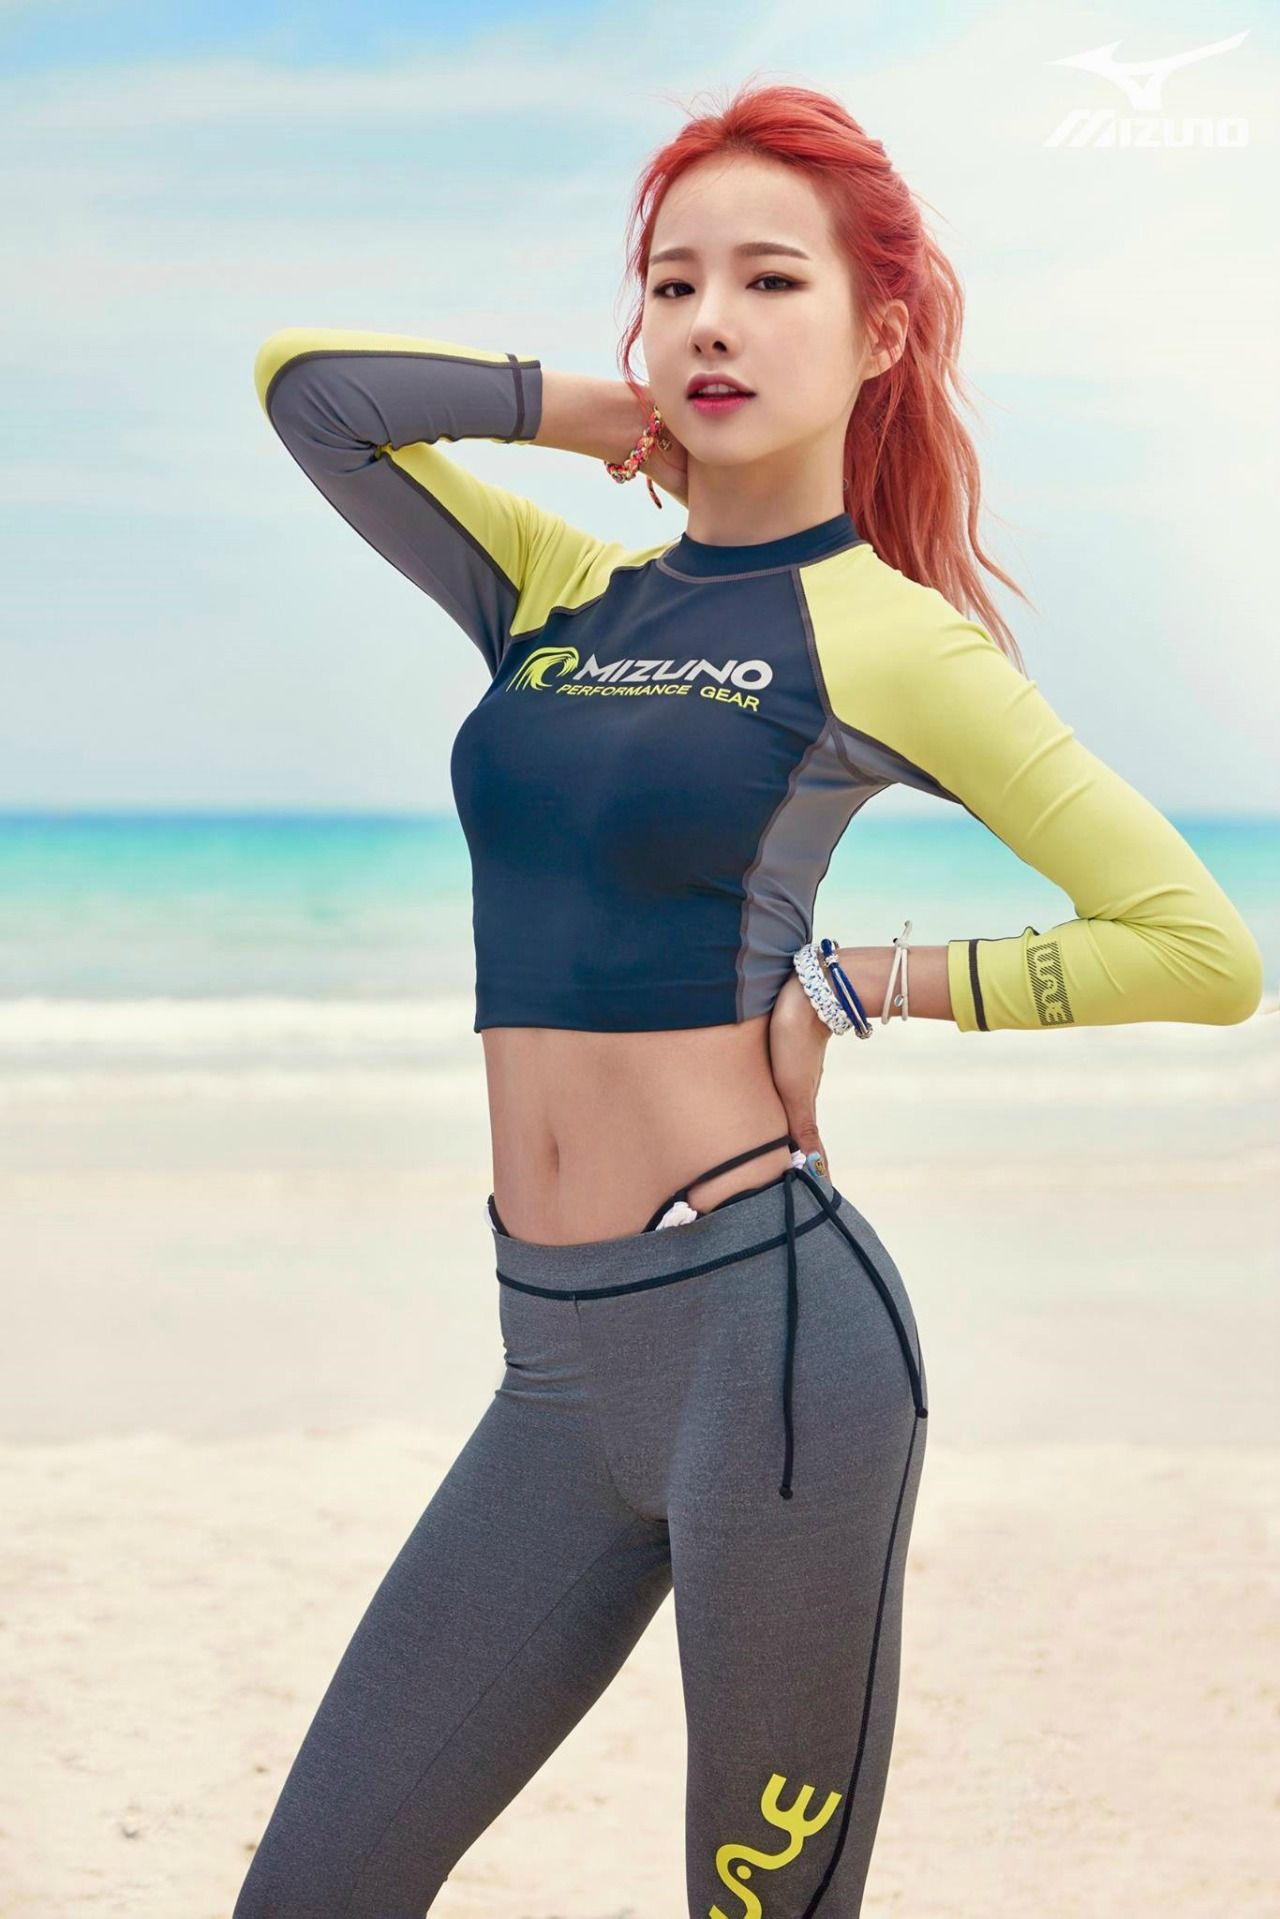 Image result for exid swimsuit